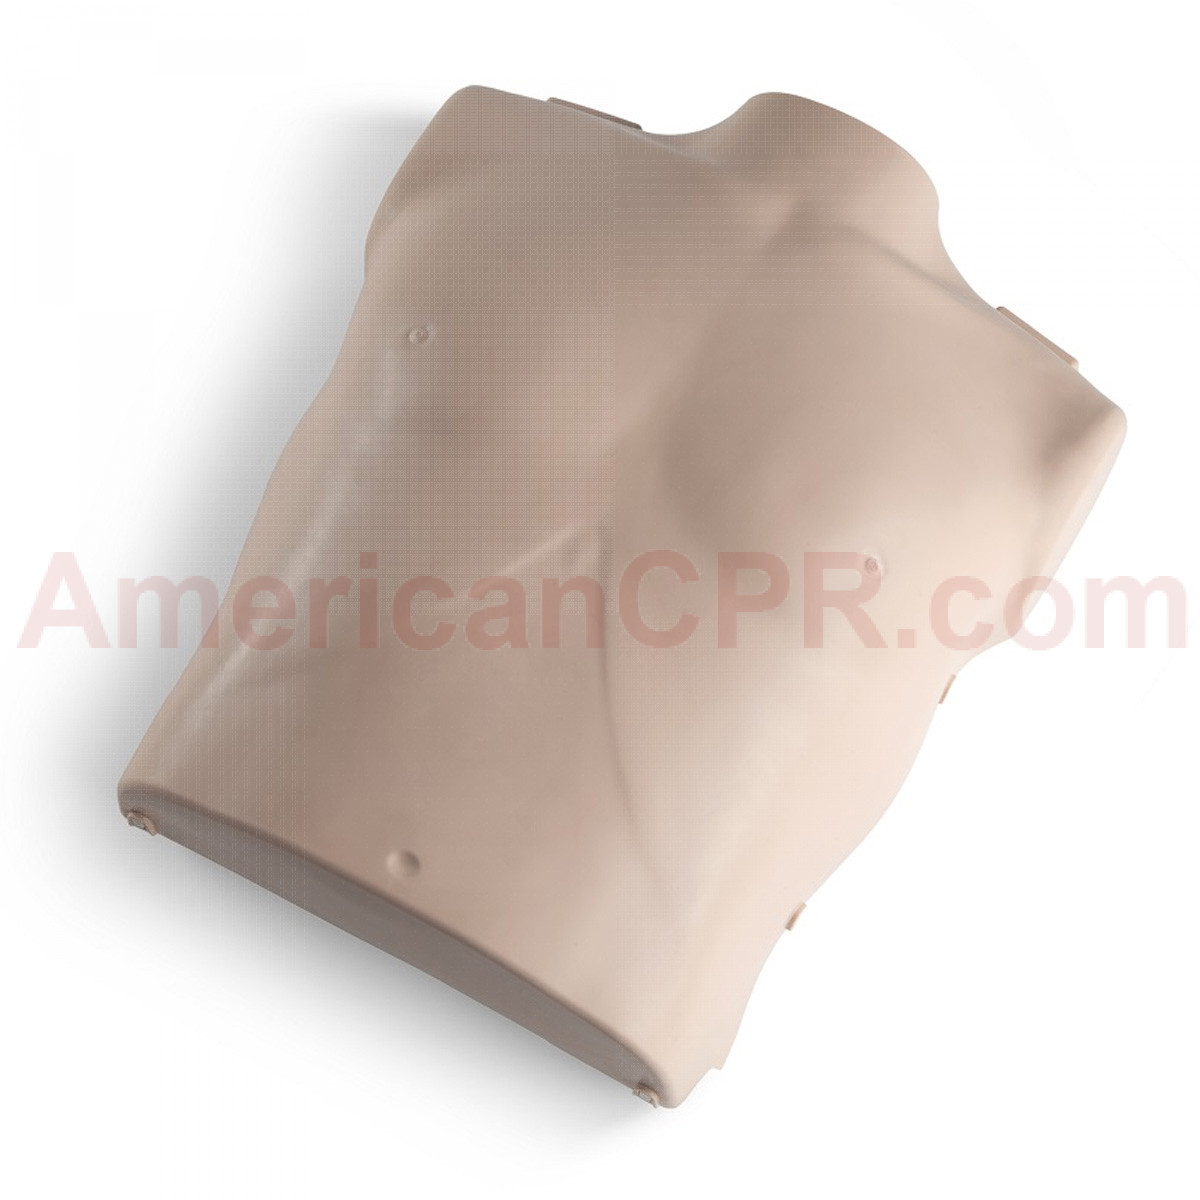 Prestan Adult Manikin Torso Assembly w/o Monitor - Medium Skin - Prestan Products